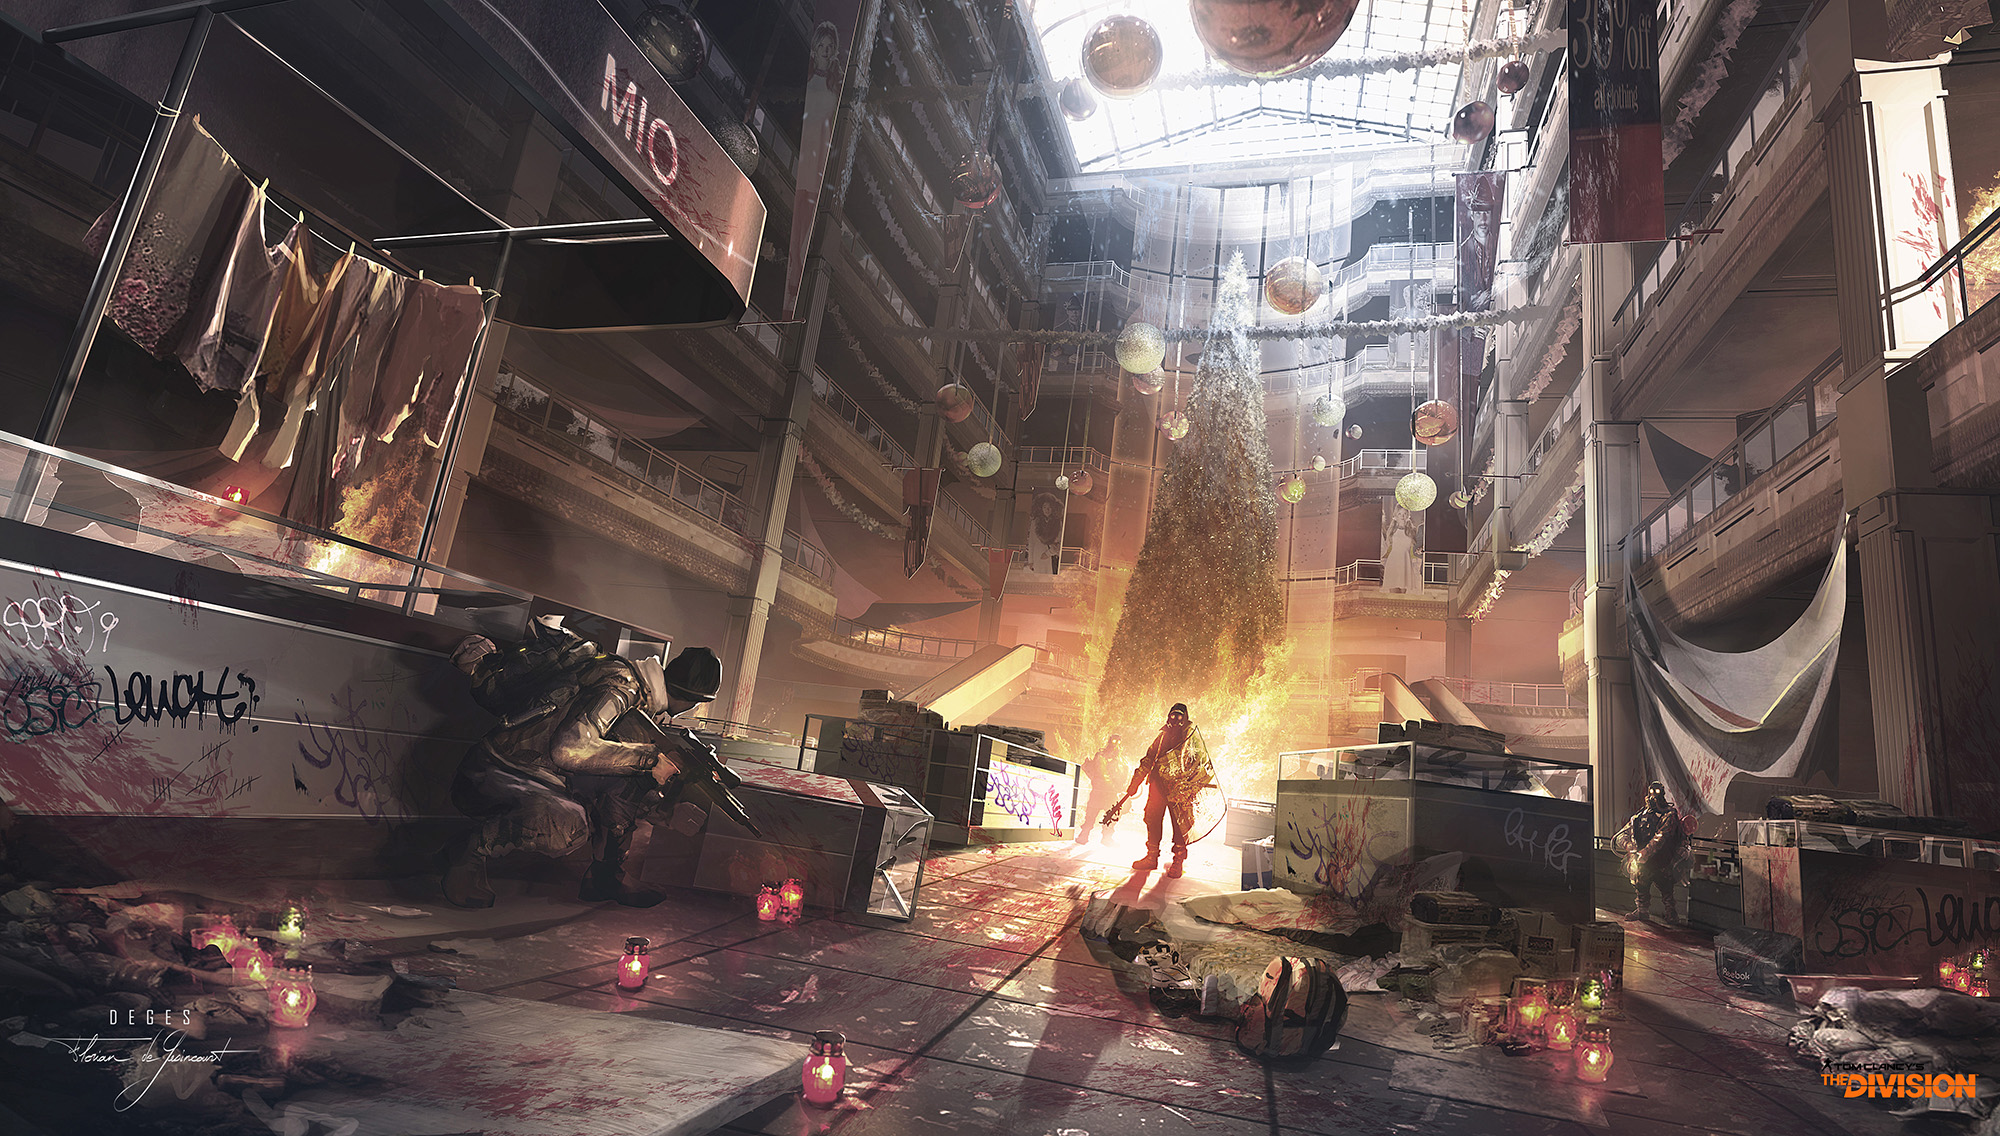 Tom Clancy S The Division Concept Art By Florian De